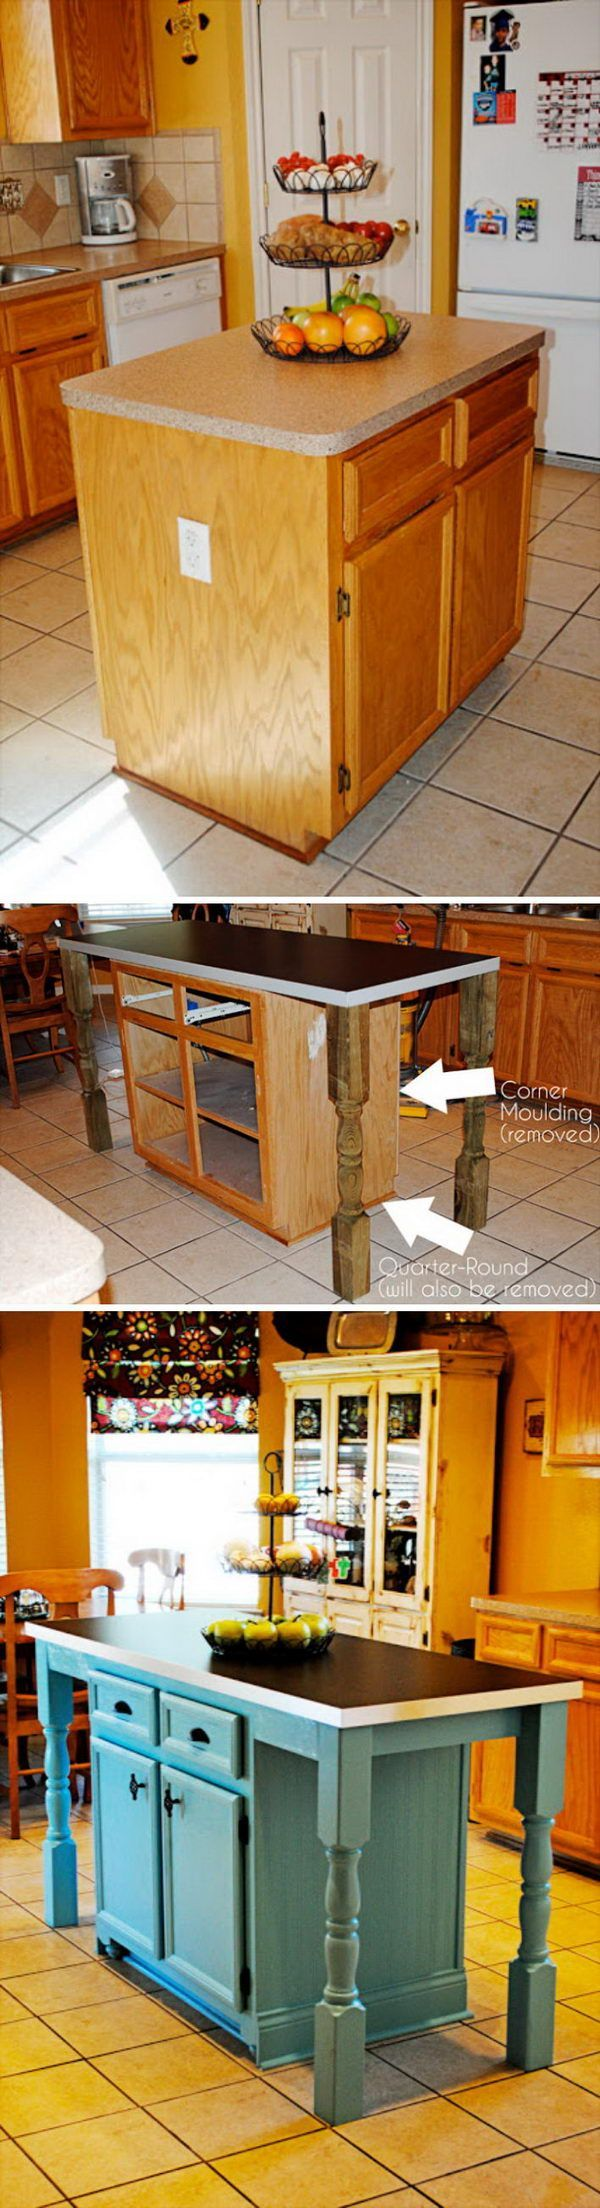 Clever Kitchen Island Makeover - 40 High Style Low-Budget Furniture Makeovers You Could Definitely Do